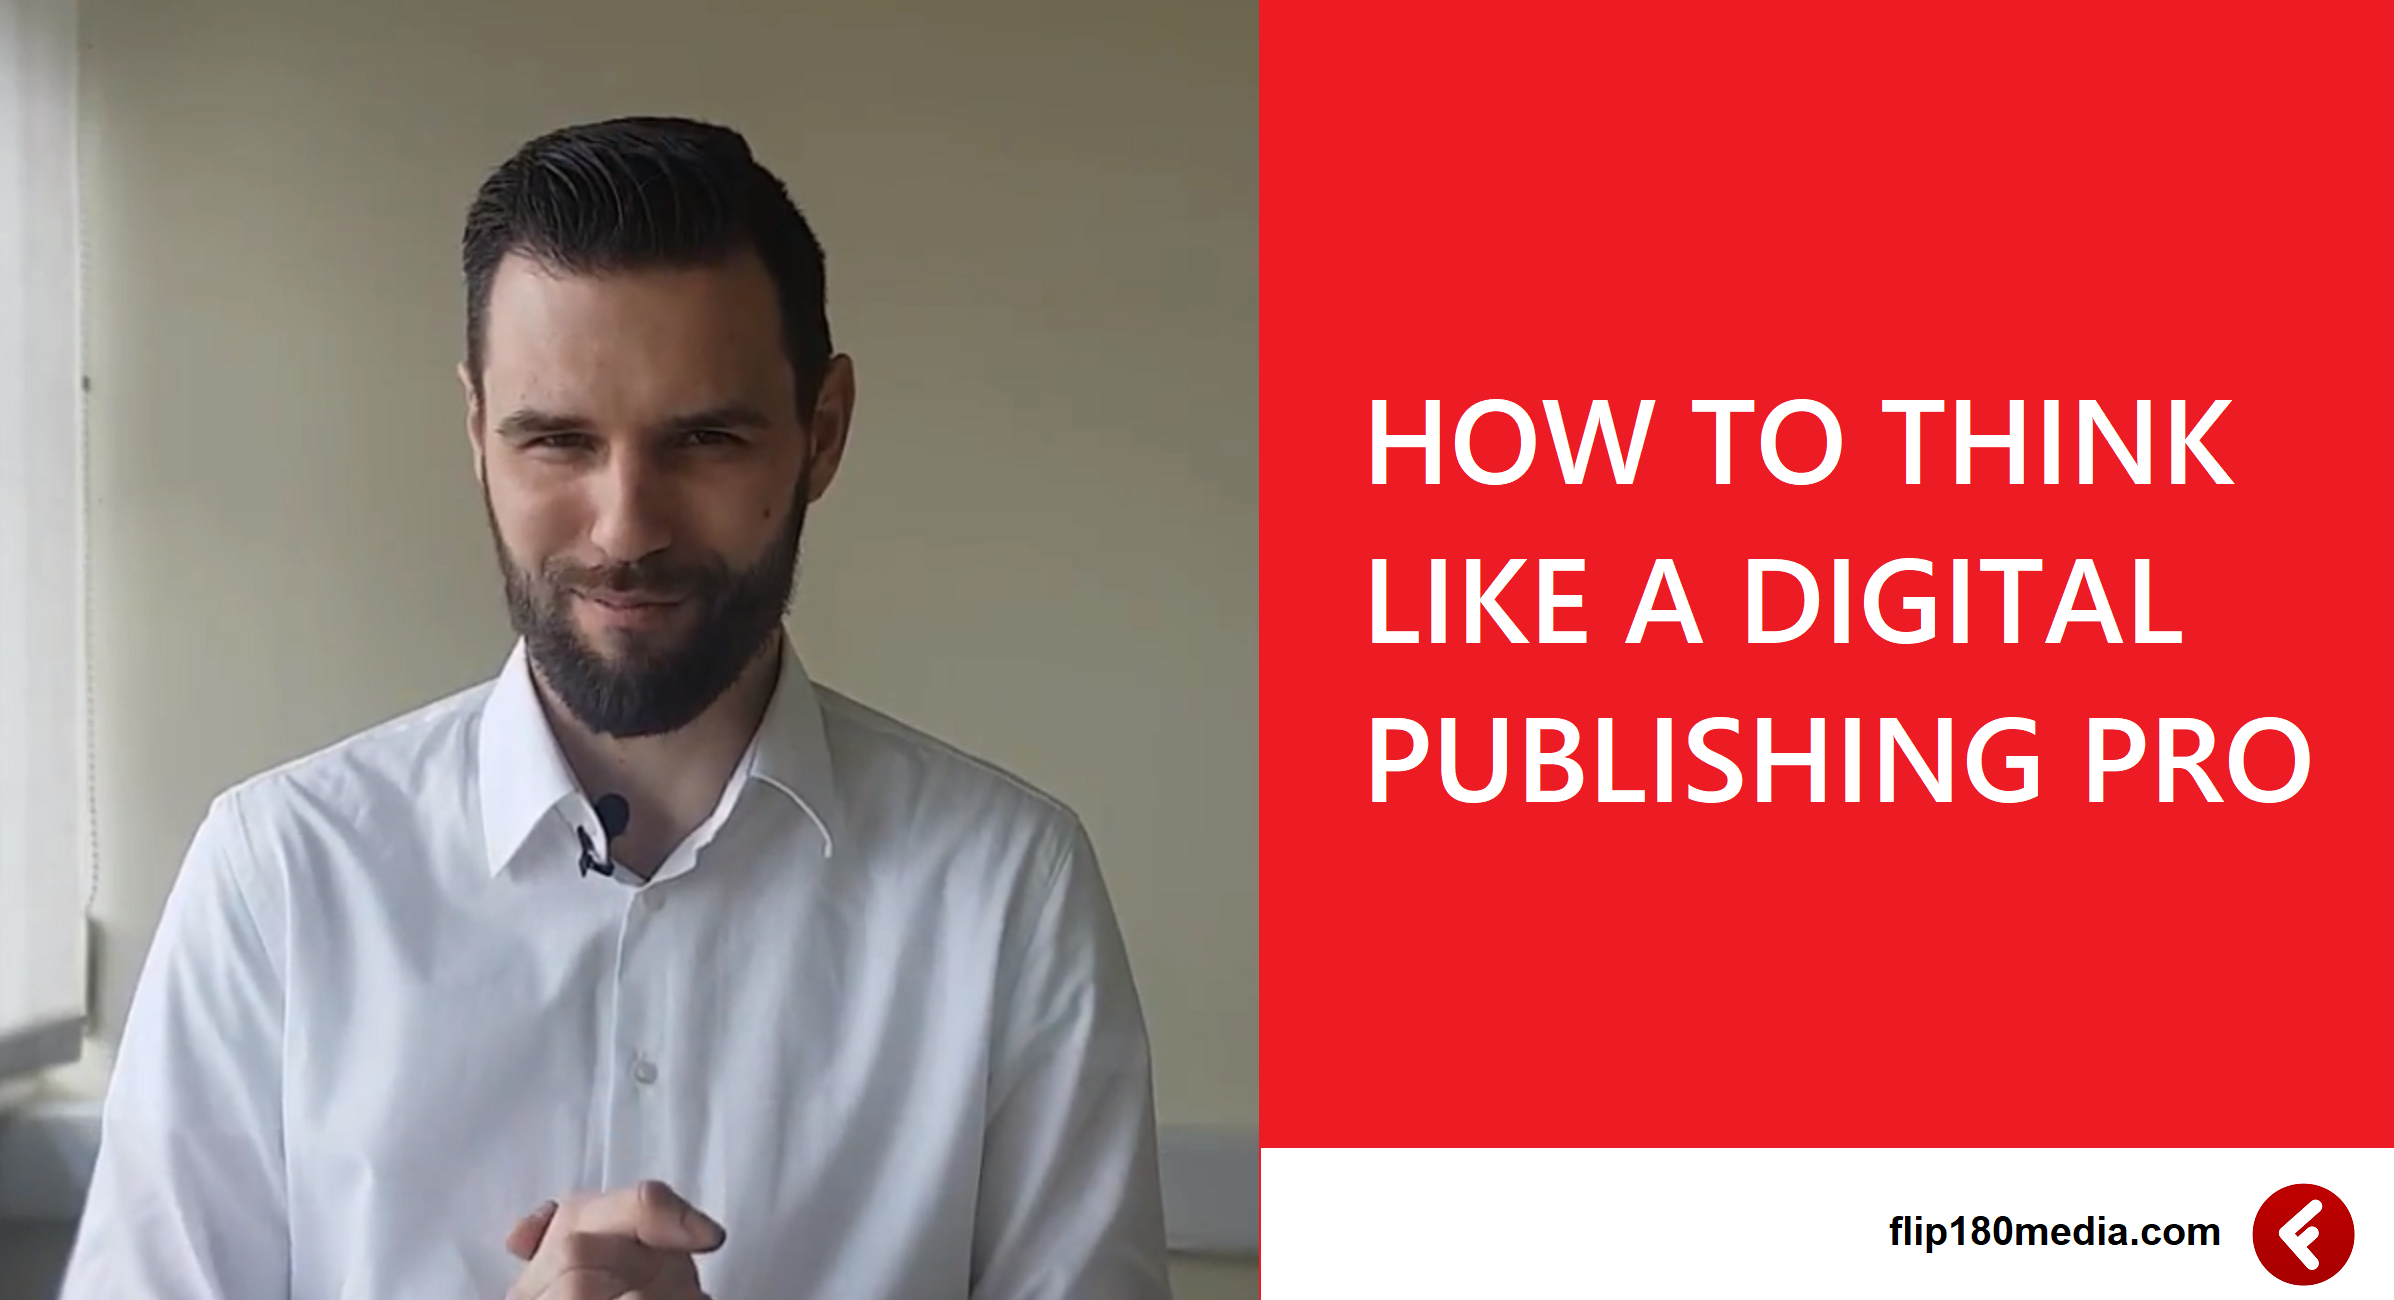 How to think like a digital publishing pro